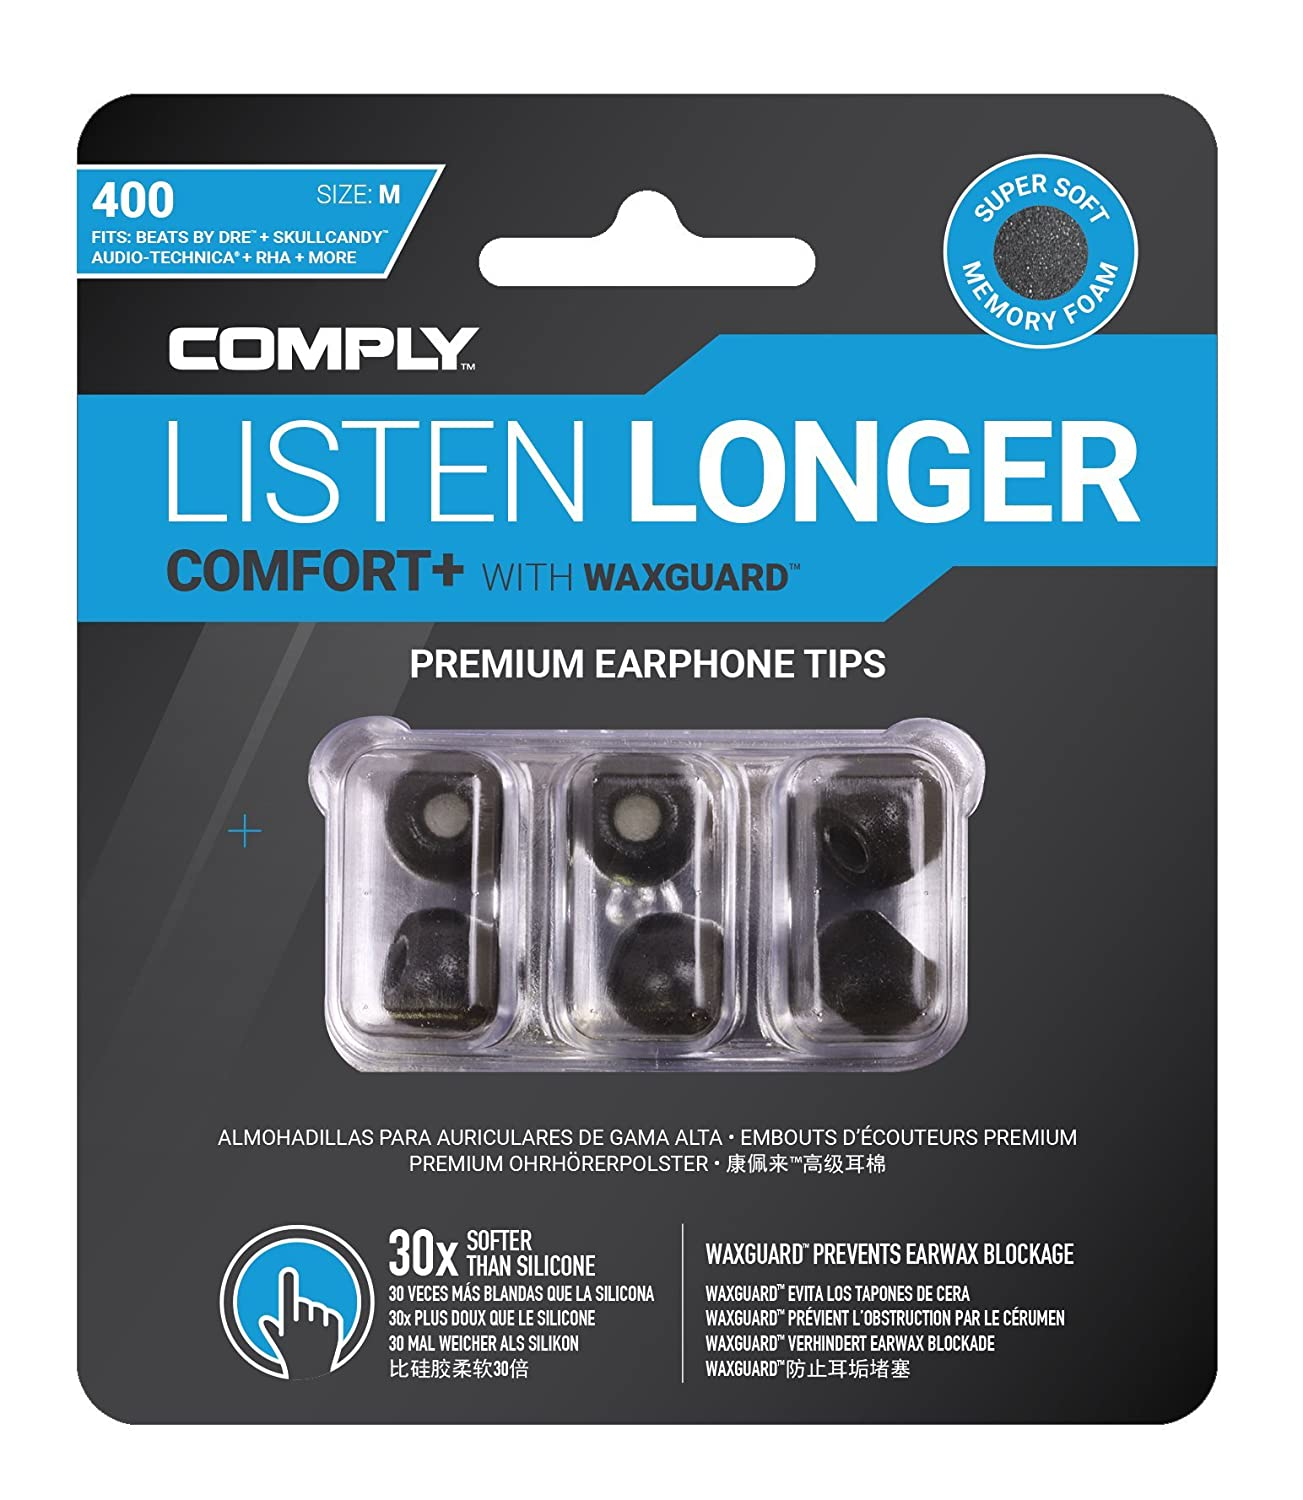 Comply Comfort Plus Premium Memory Foam Earphone Tips Noise Reducing Replacement Earbud Tips BandO Play Xioami Mi Hybrid and More Secure Fit Ultimate Ears Large - Black MEE audio M6 Pro Tsx-200 3 Pair